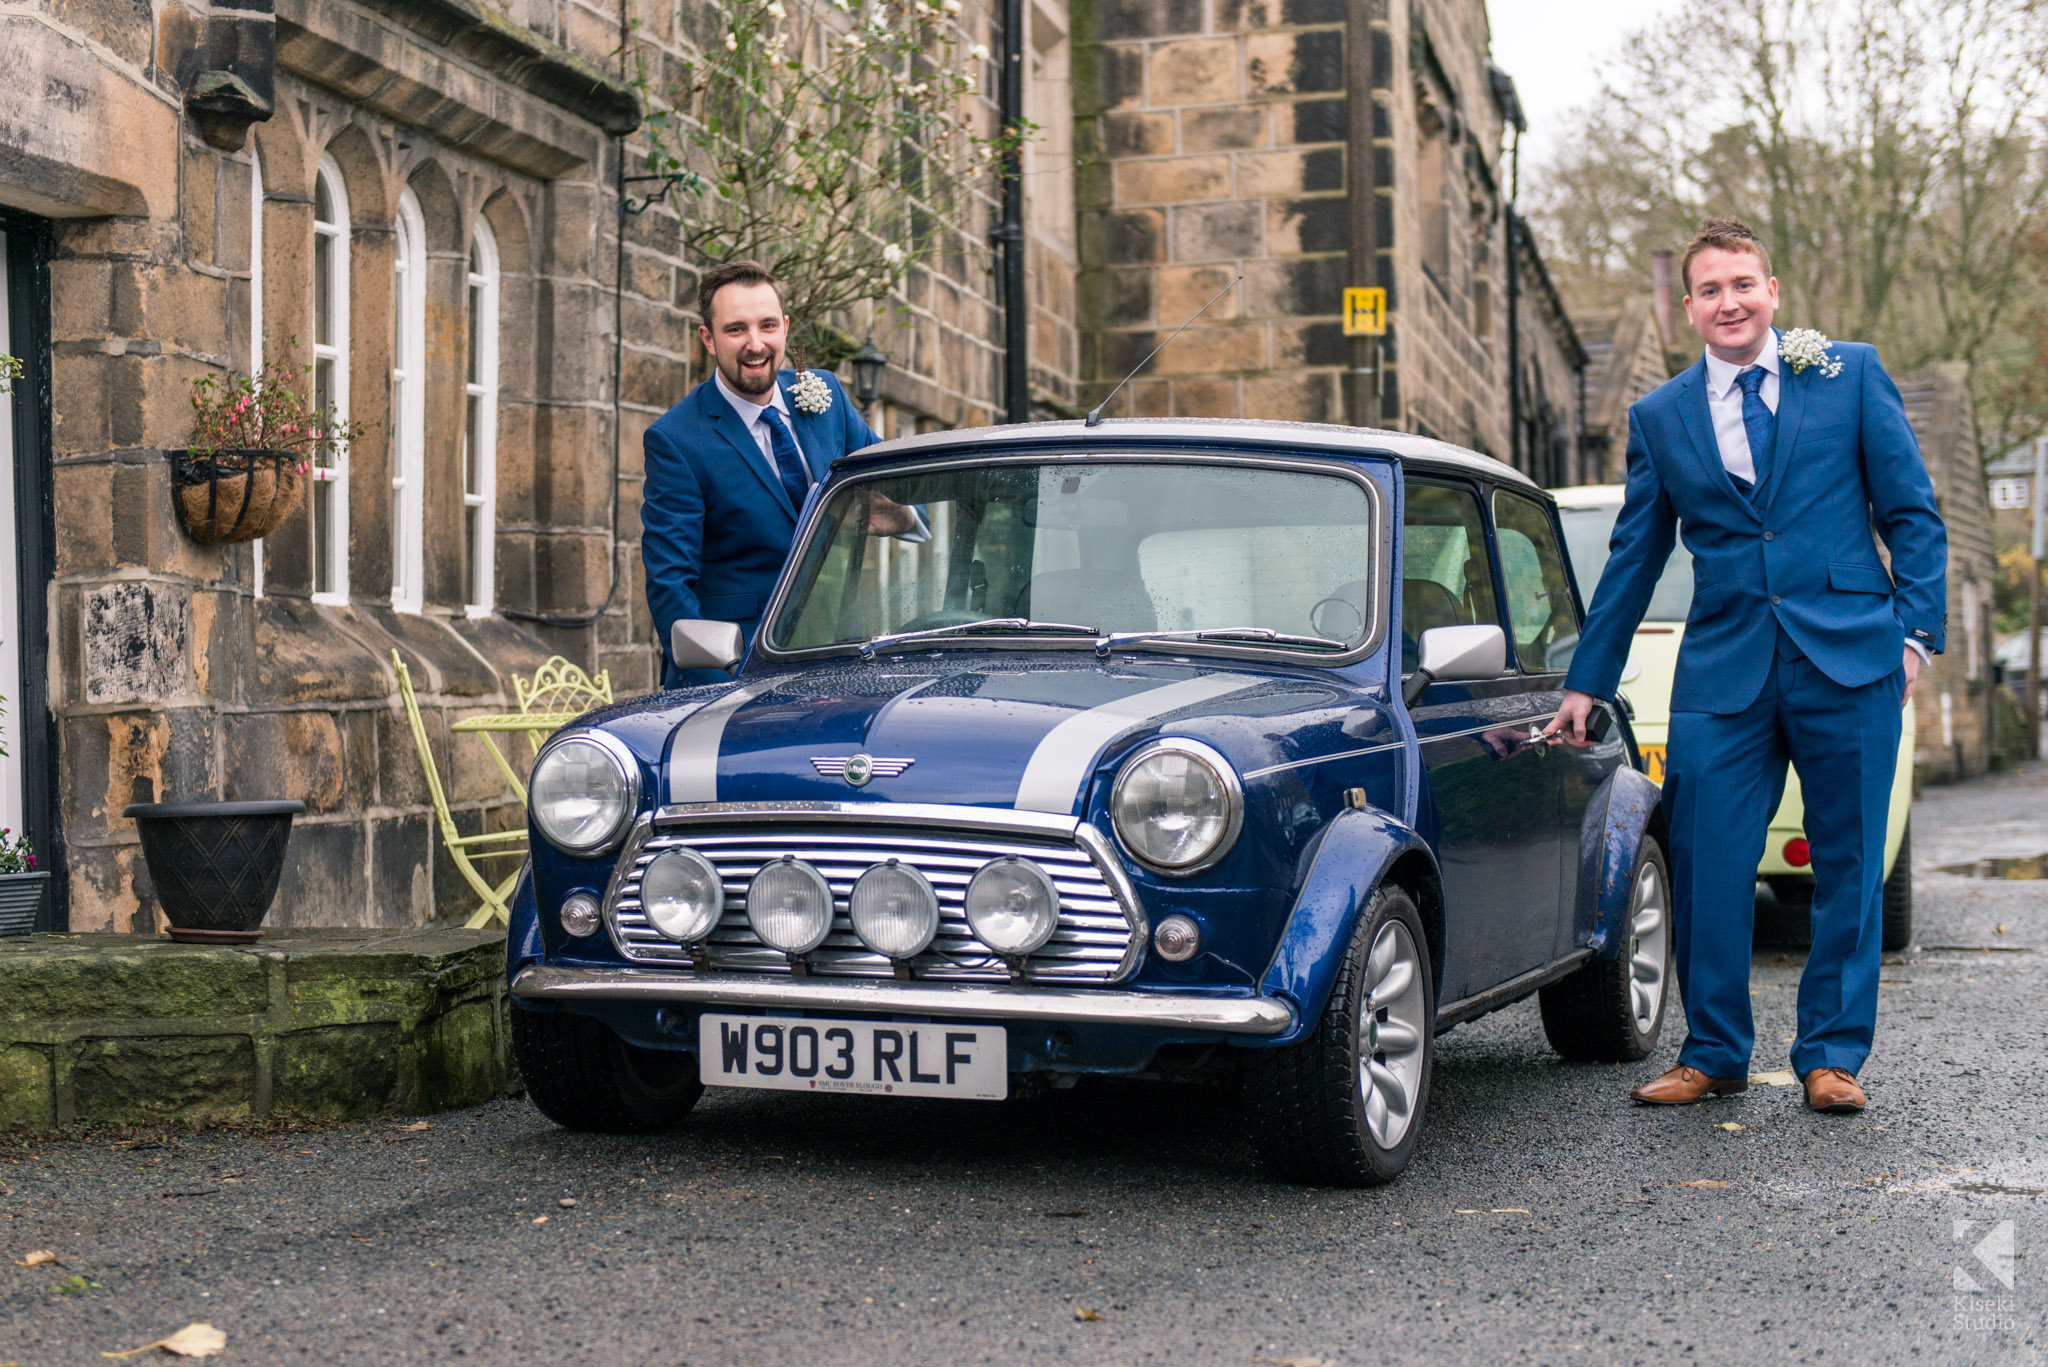 Groomsmen in the Mini Cooper classic